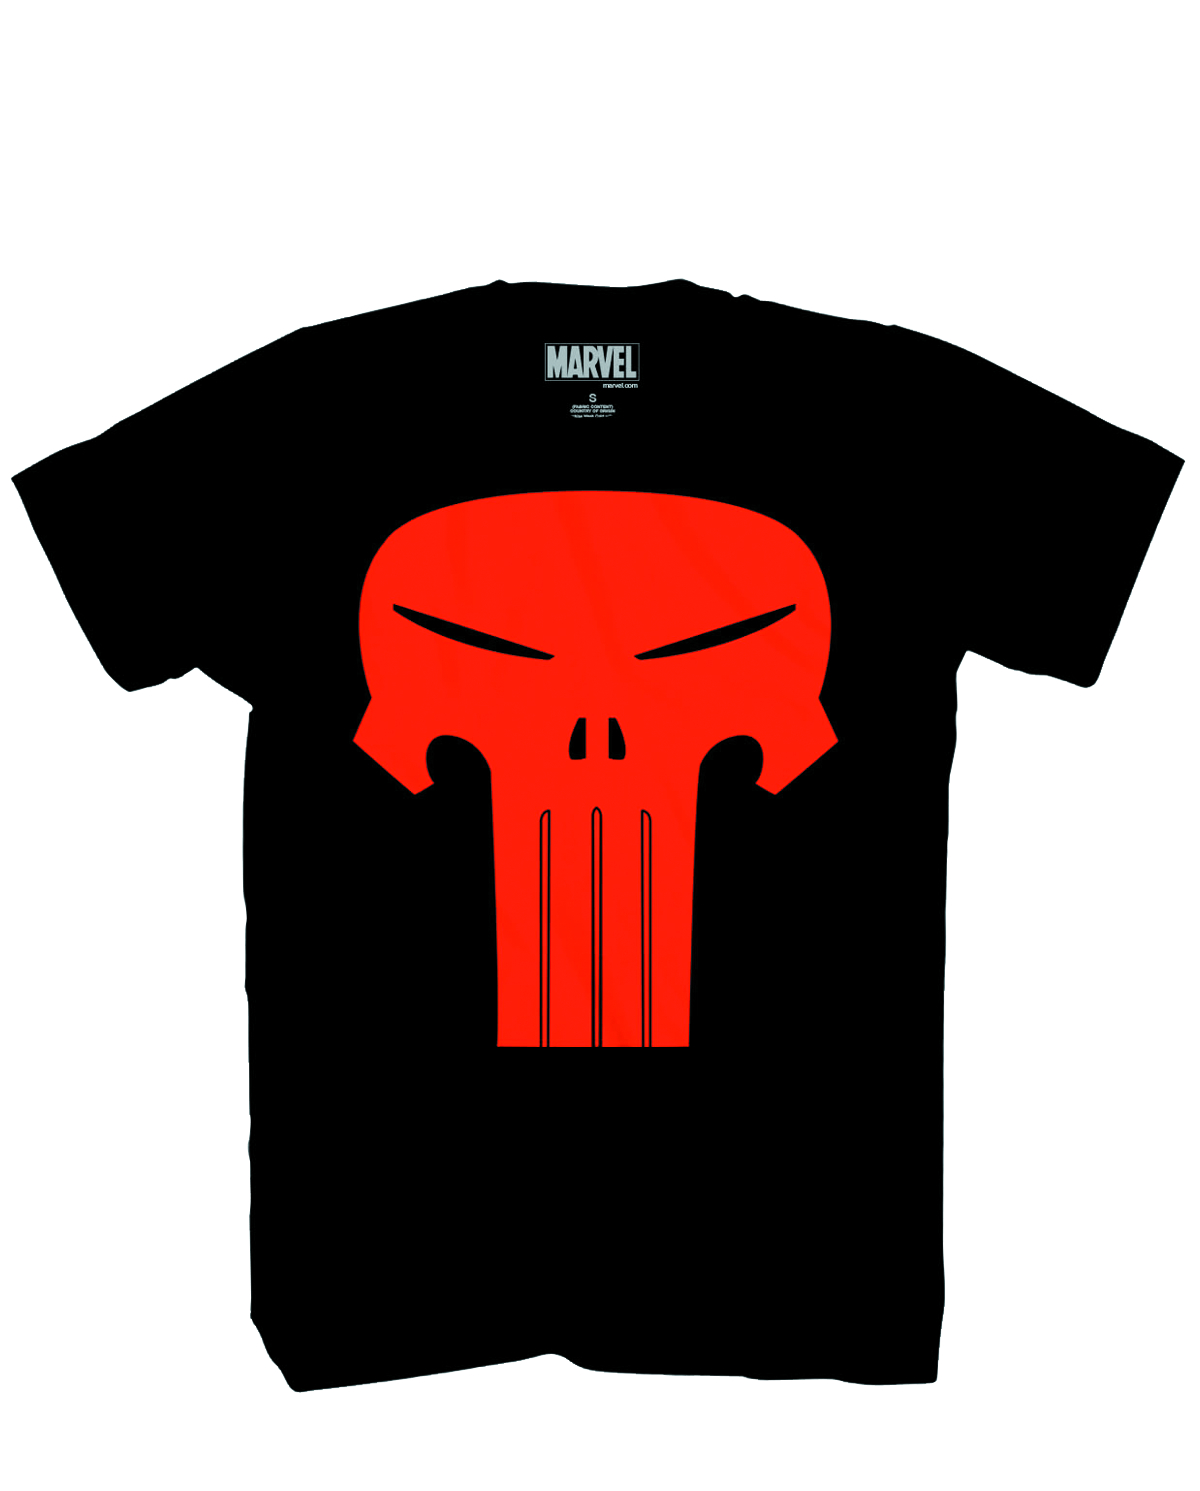 MARVEL PUNISHER SKINNY SKULL PX BLK T/S LG